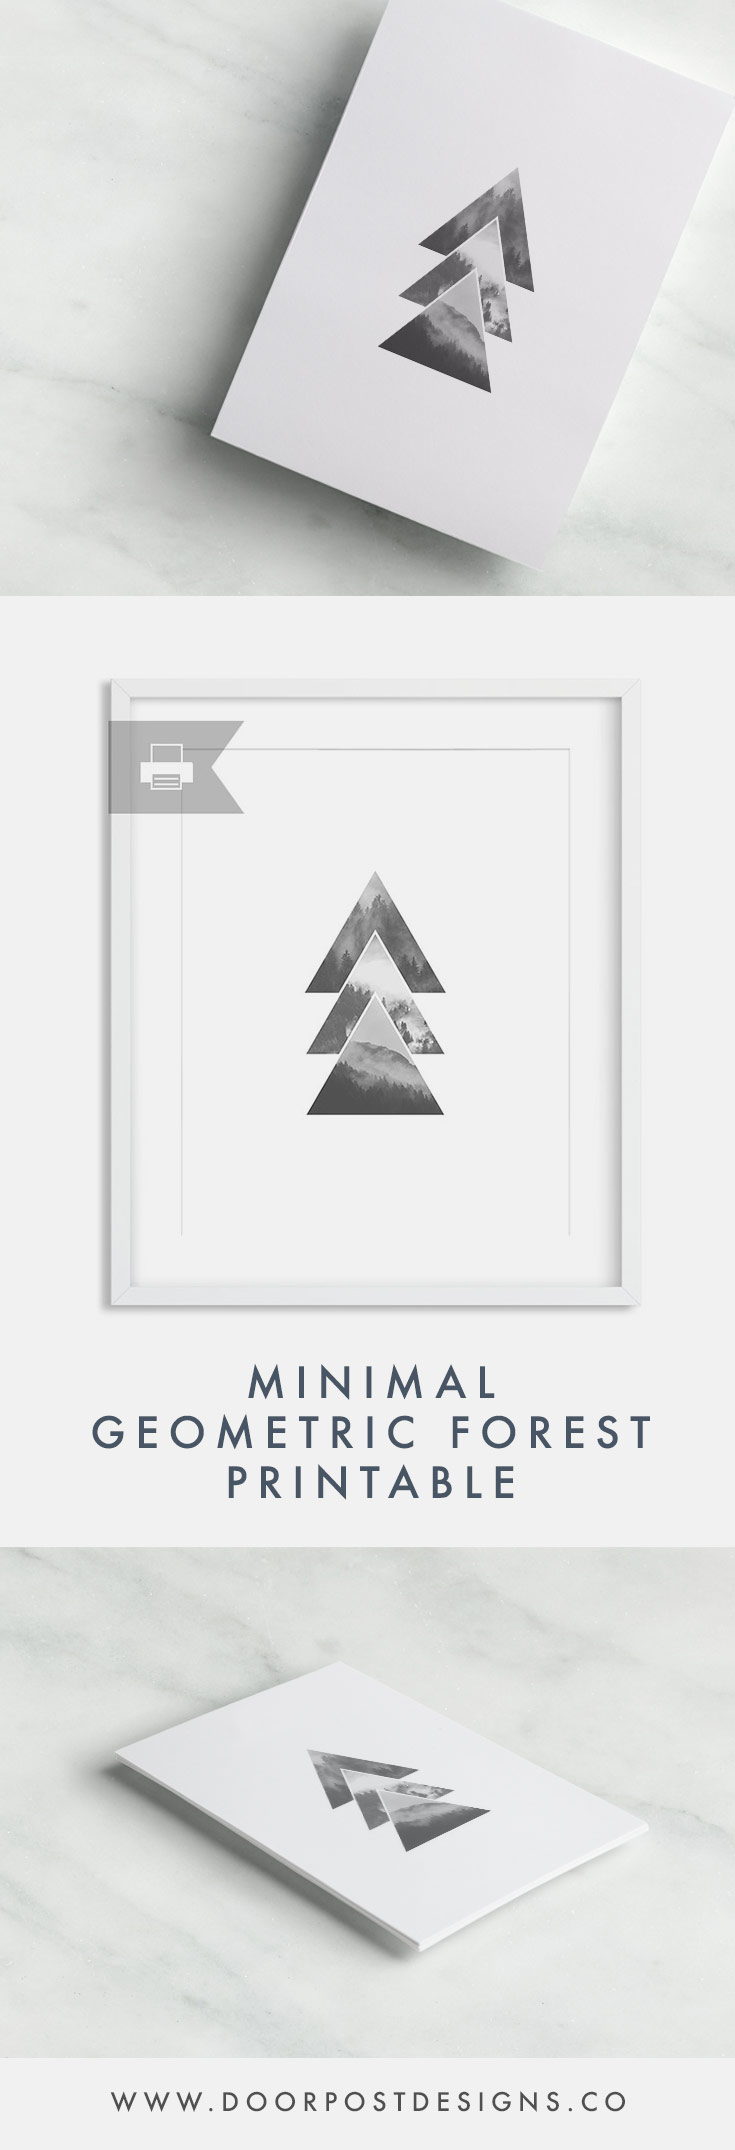 Minimal Geometric Forest Printable | Decorate from the comfort of your own home! The digital file will be sent to your email inbox upon purchase; you will receive a high-resolution JPG and a PDF for printing on your own.